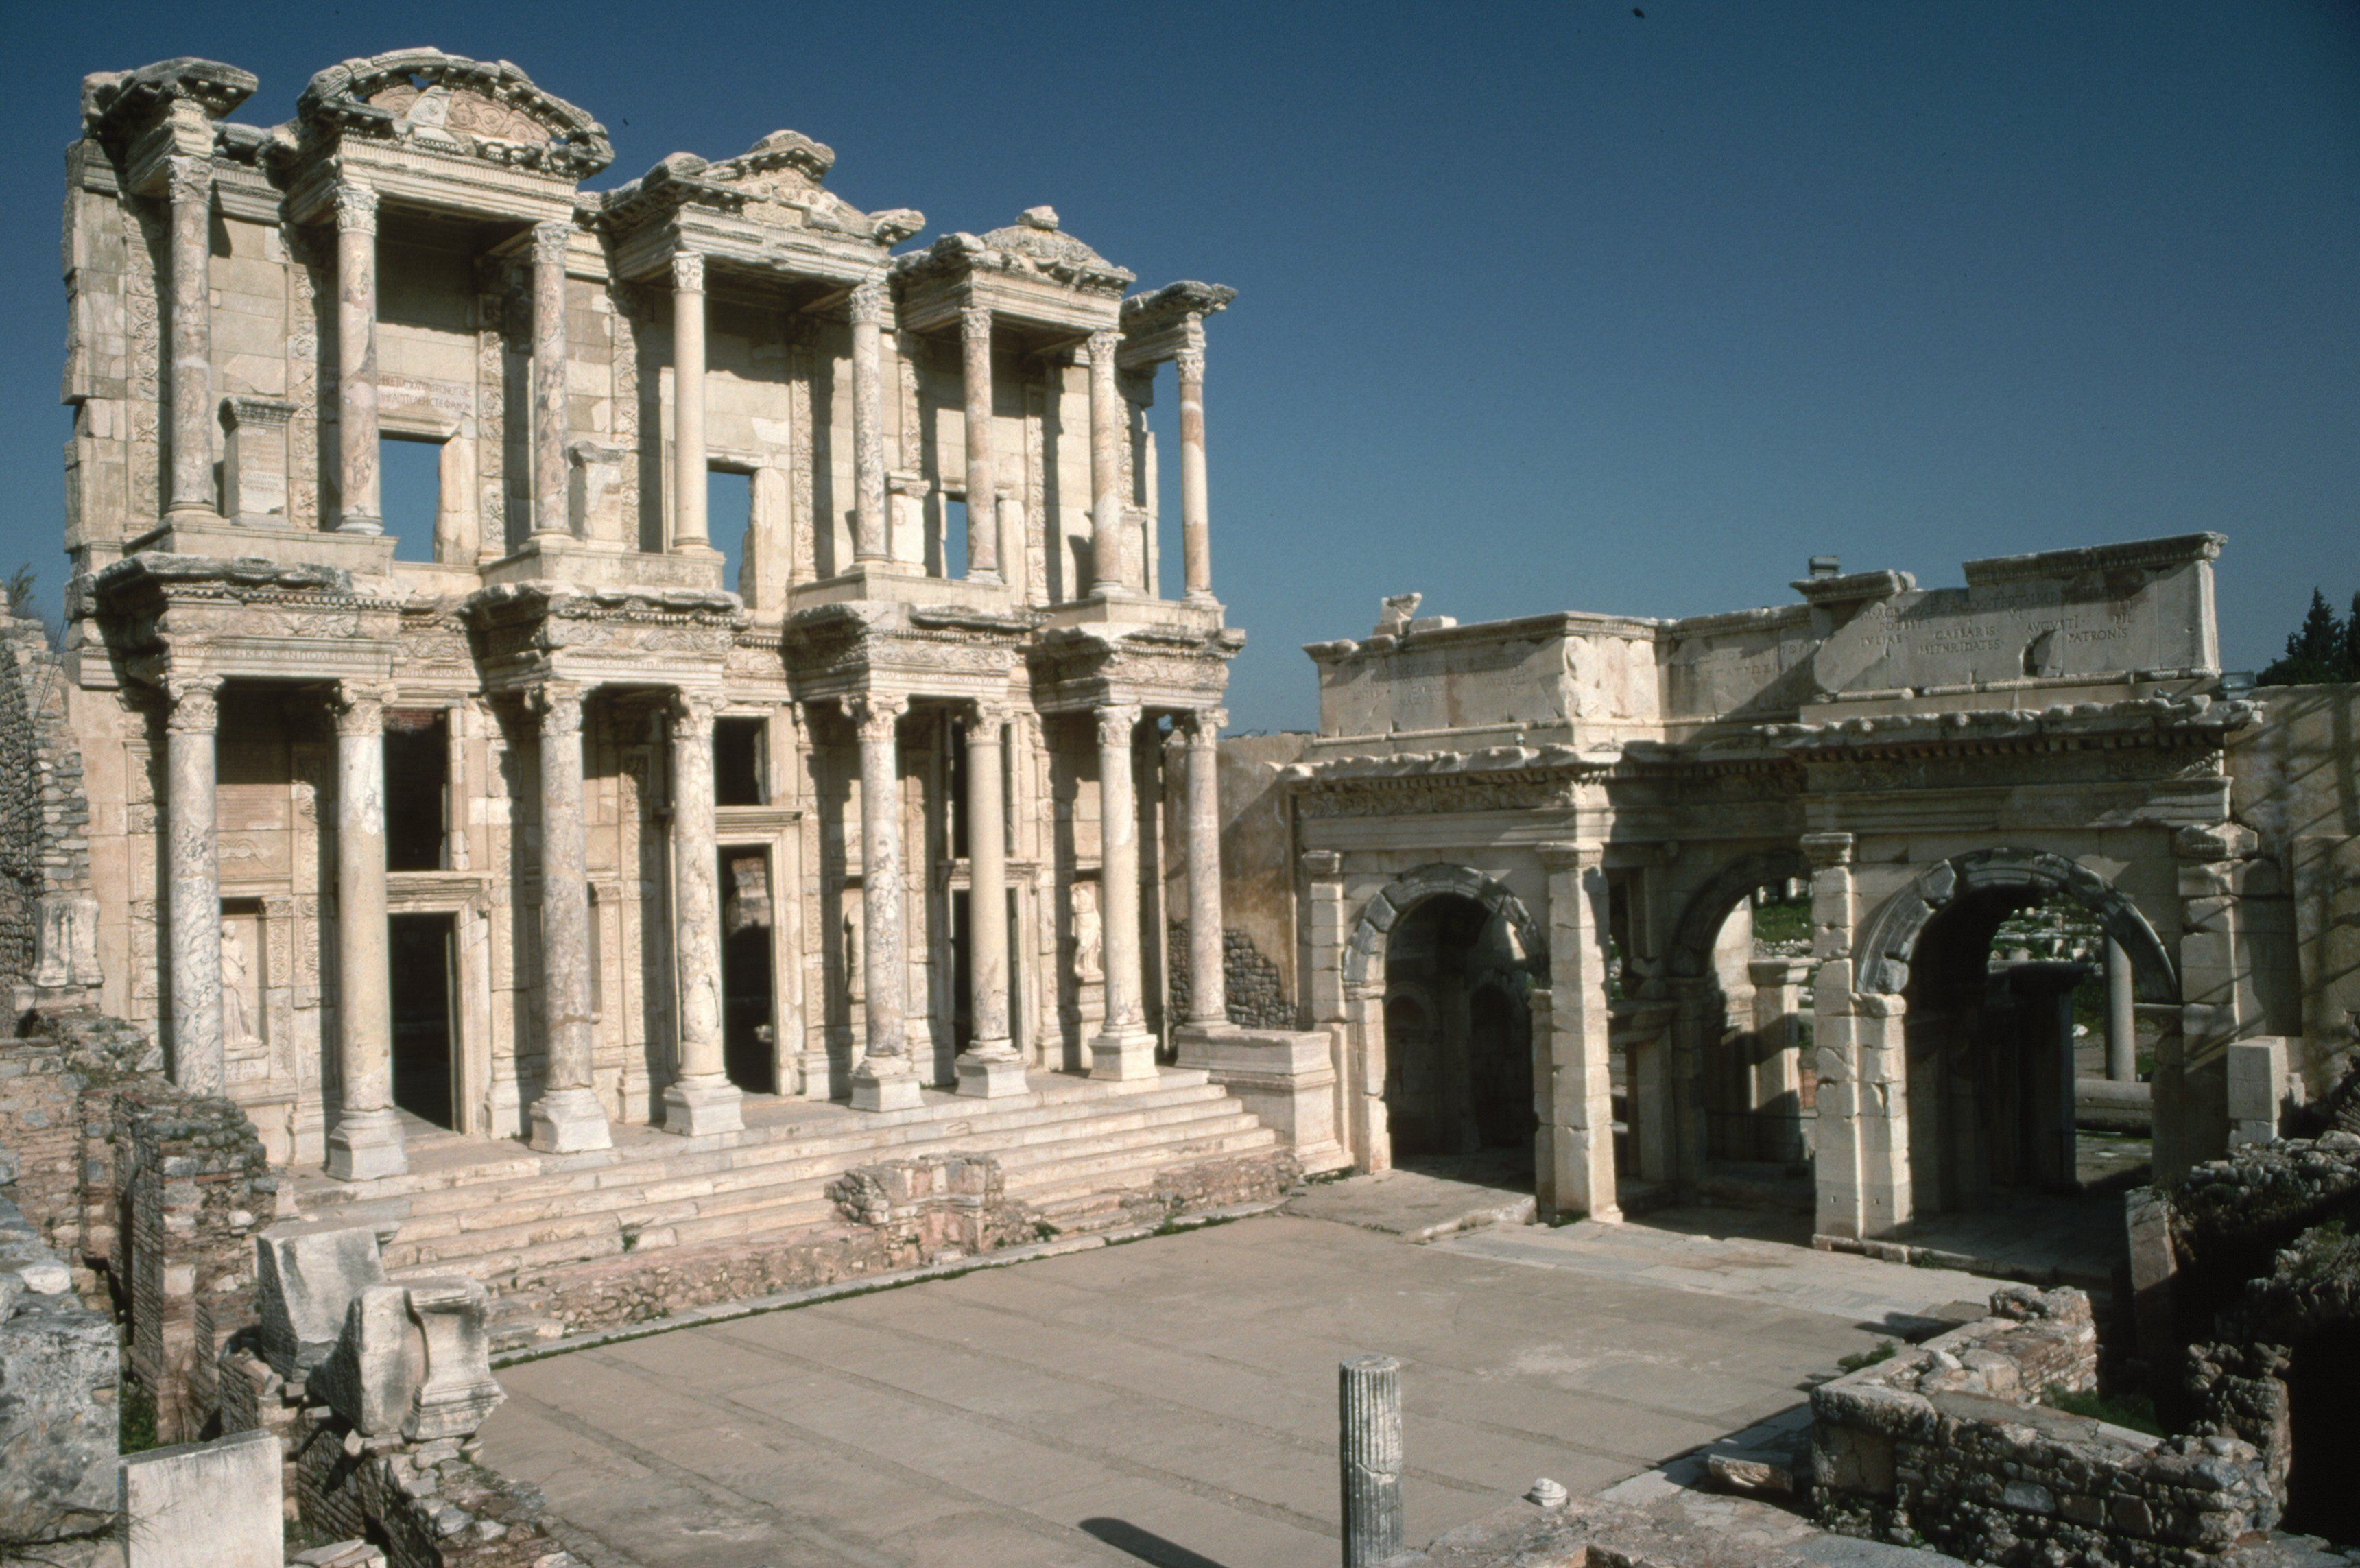 view of ruins, archways of stone, facade of columned pediments